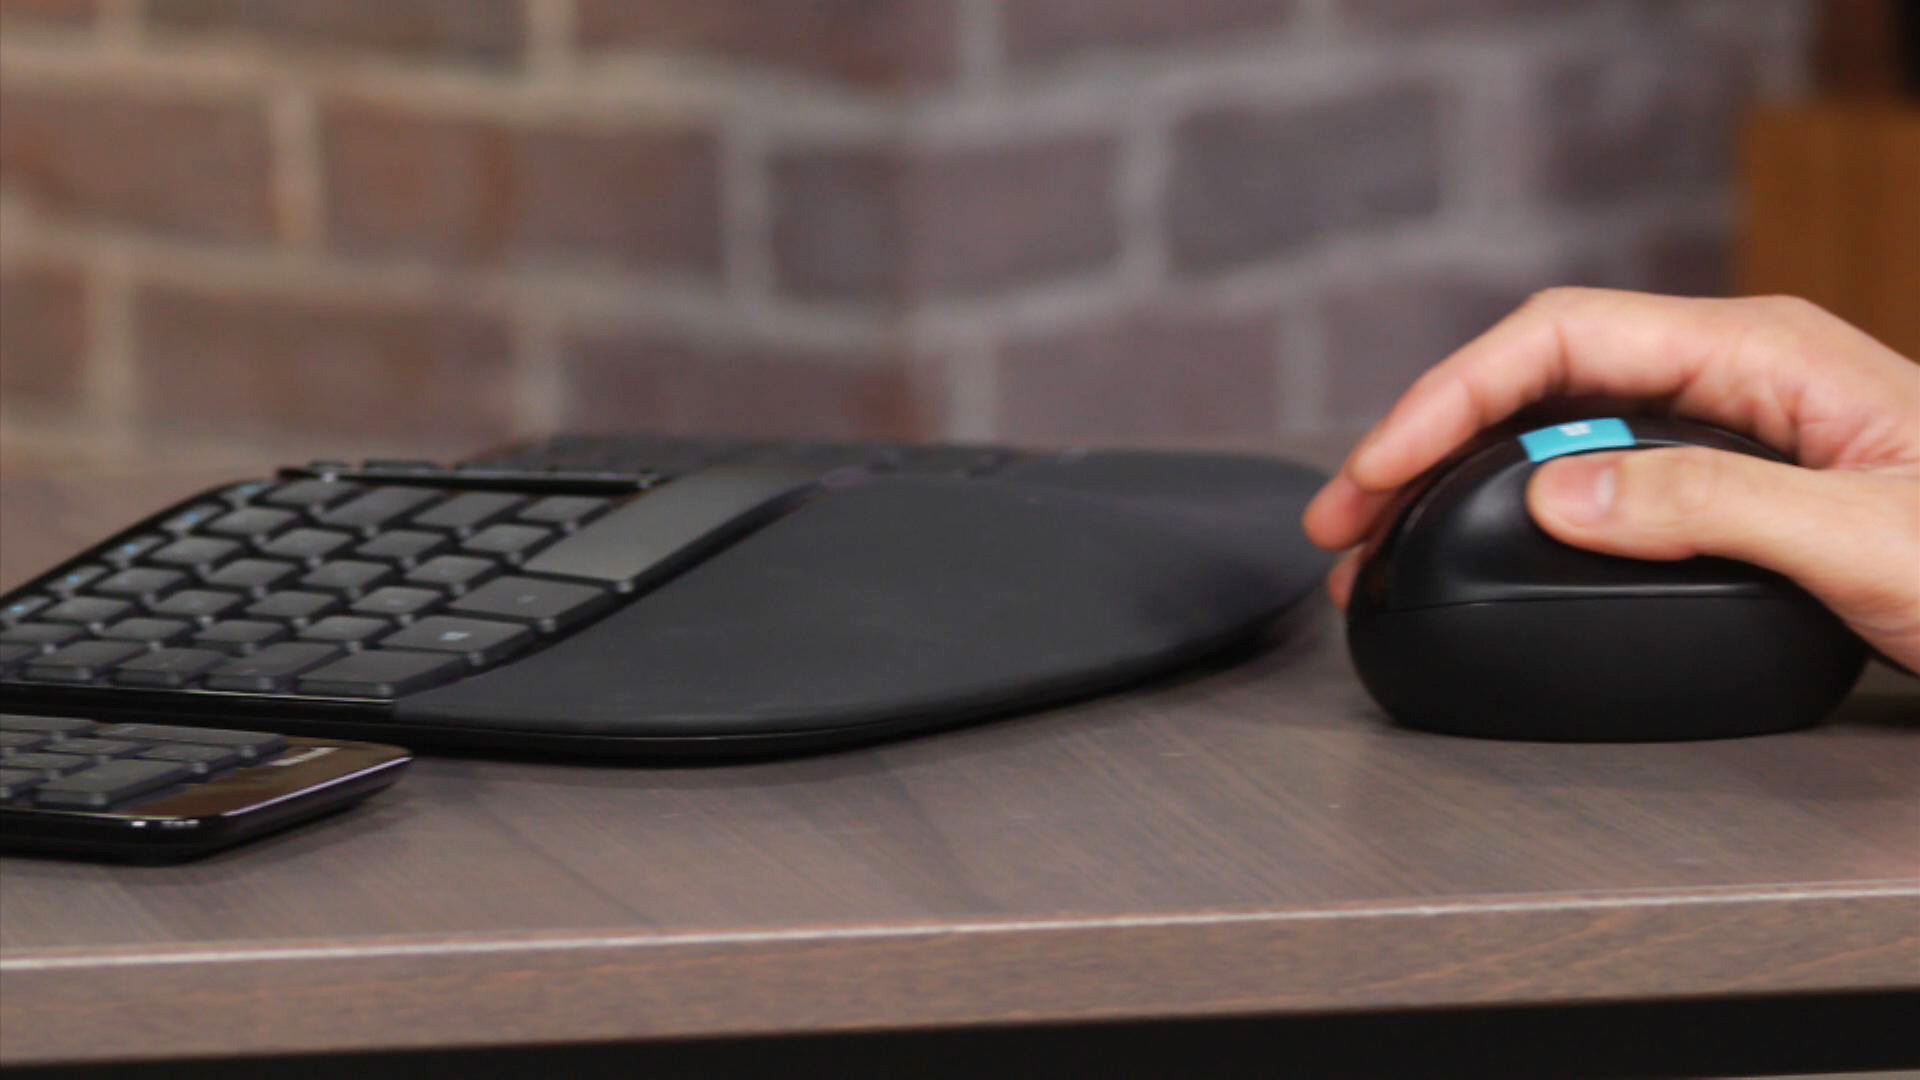 Video: Microsoft Sculpt Ergonomic Desktop